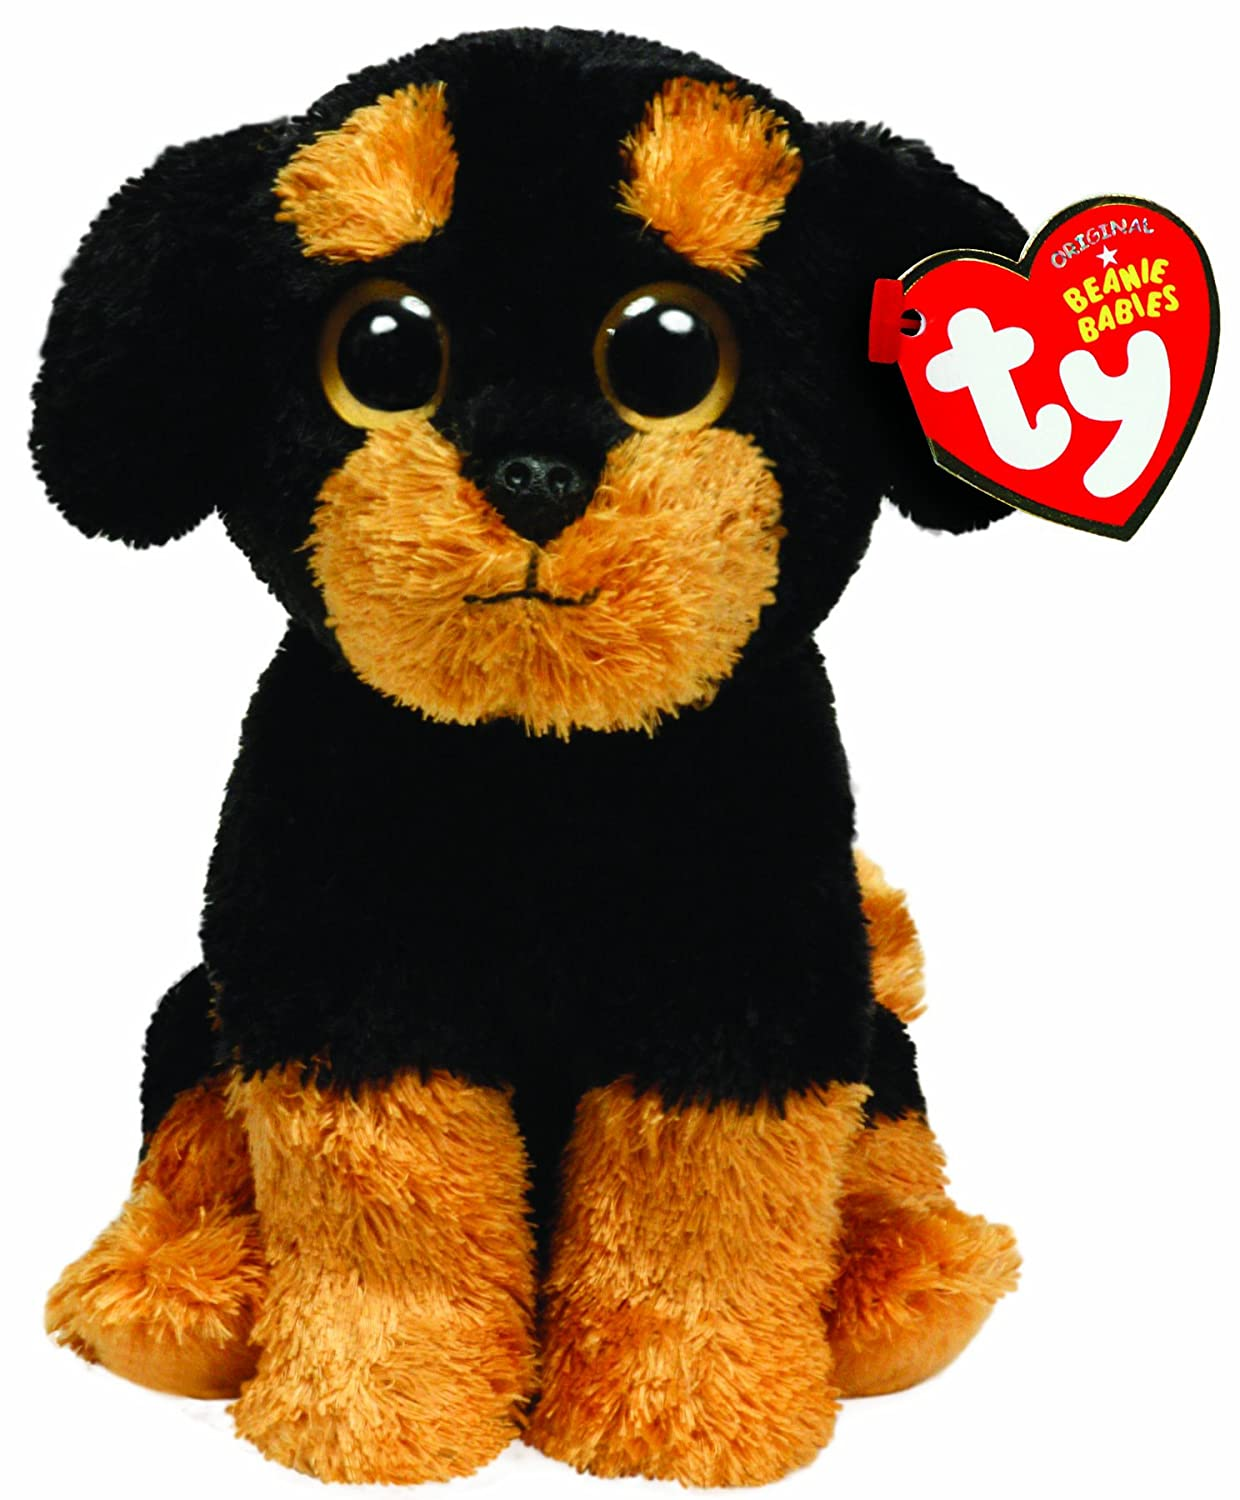 Most Valuable Beanie Babies 2015 c9715ef4431